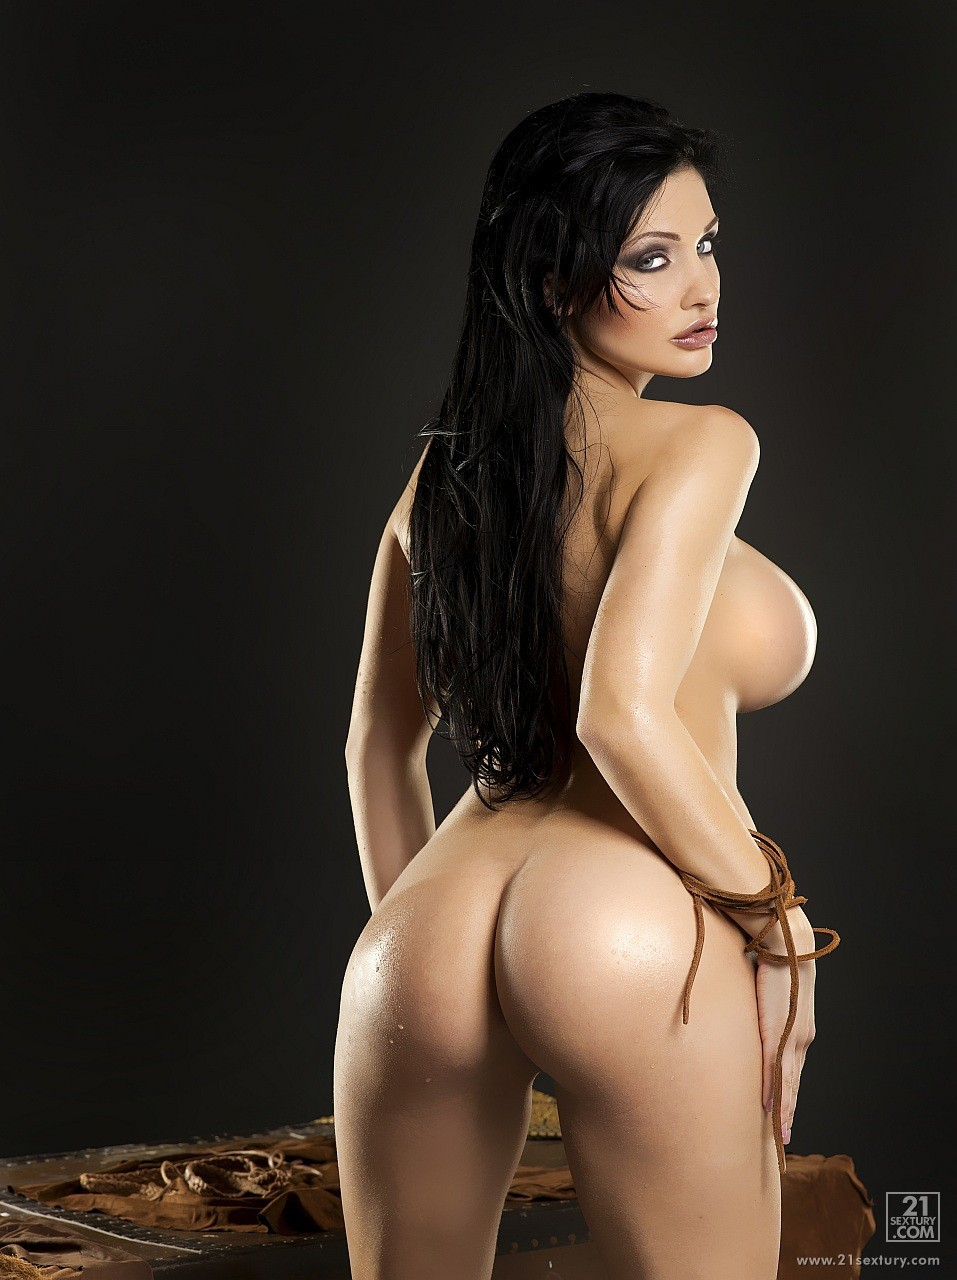 Think, Wwe diva naked pic seems excellent